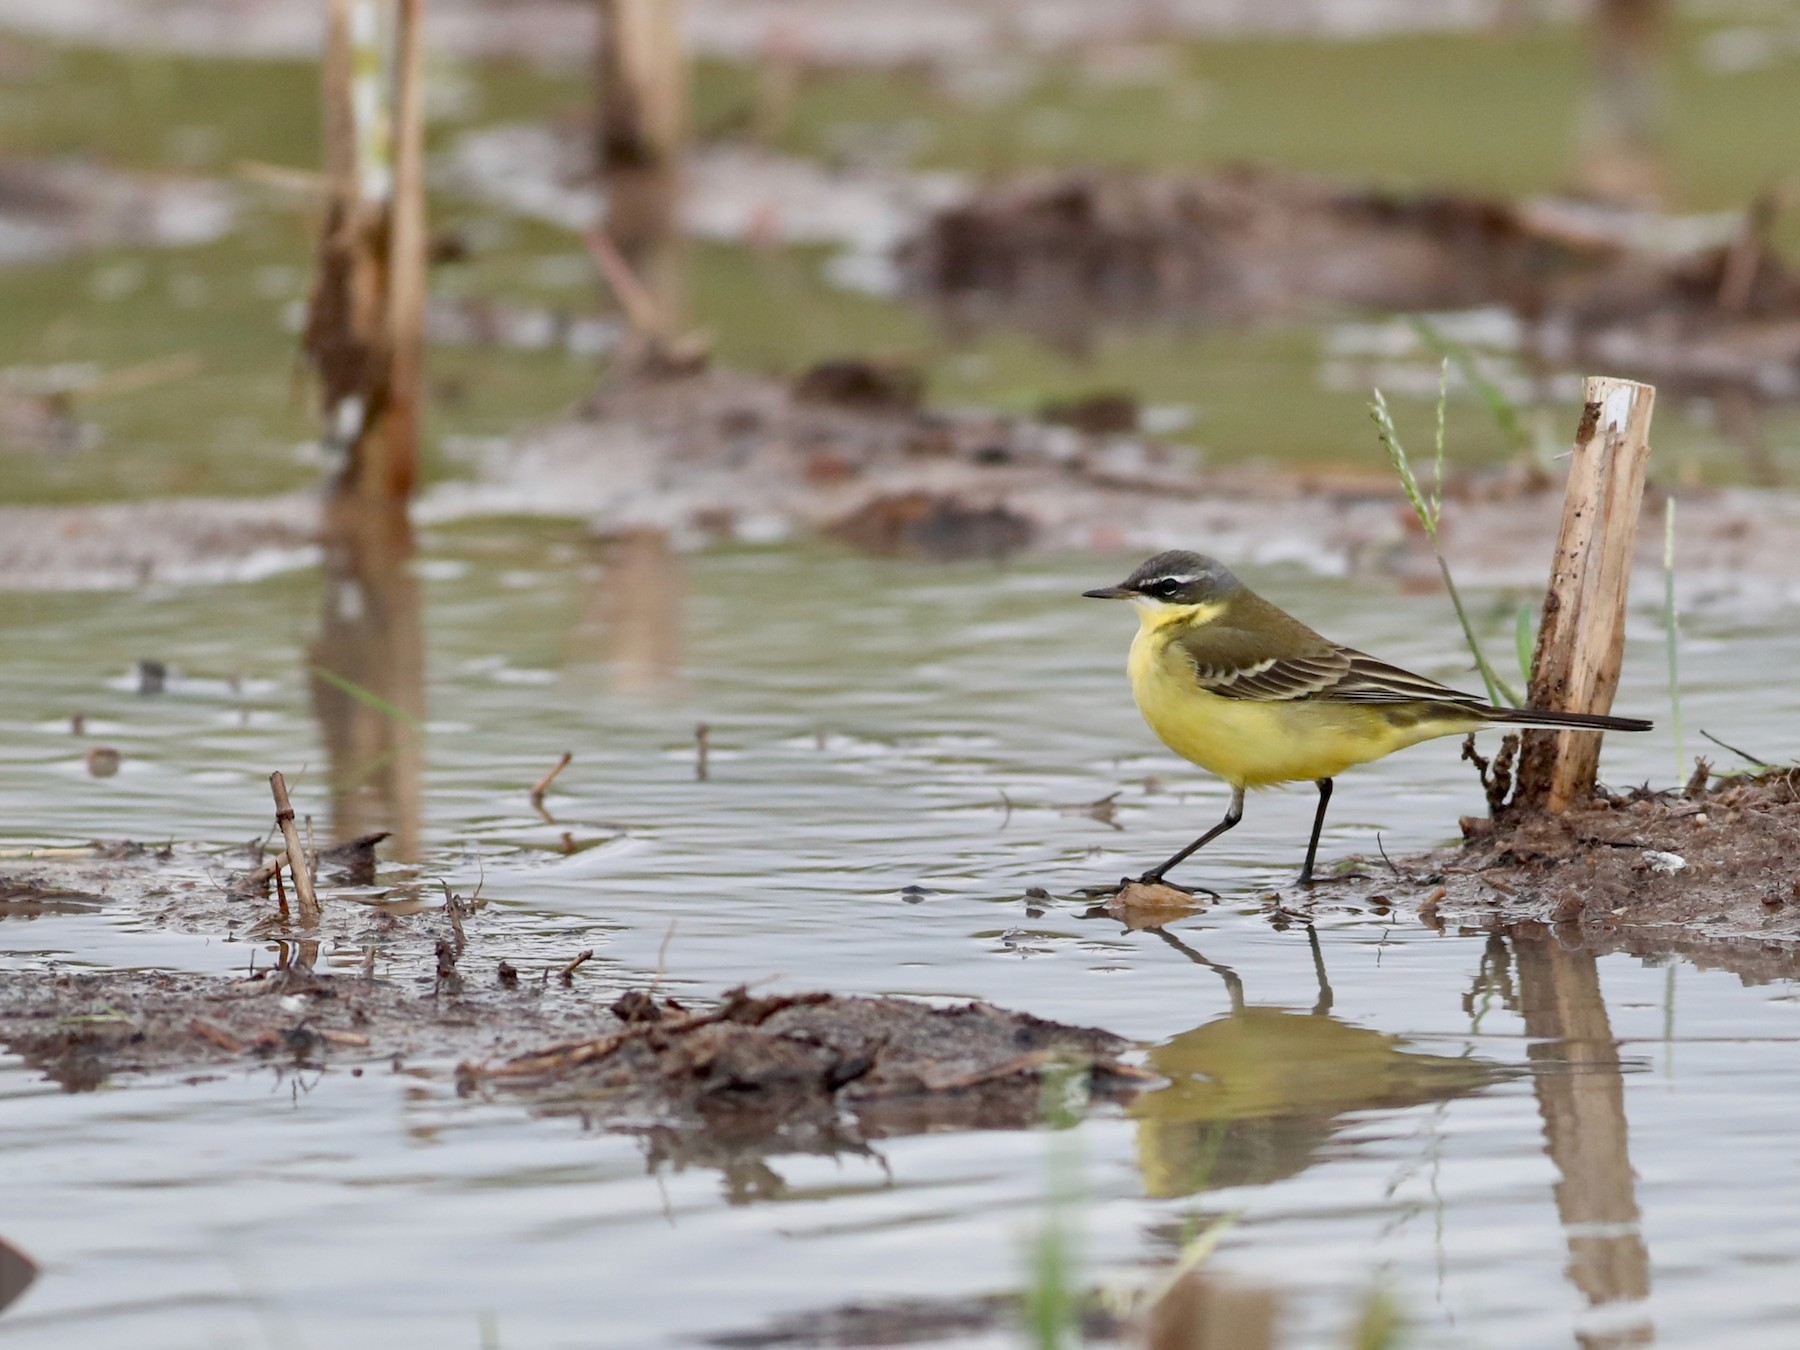 Eastern Yellow Wagtail - Ting-Wei (廷維) HUNG (洪)